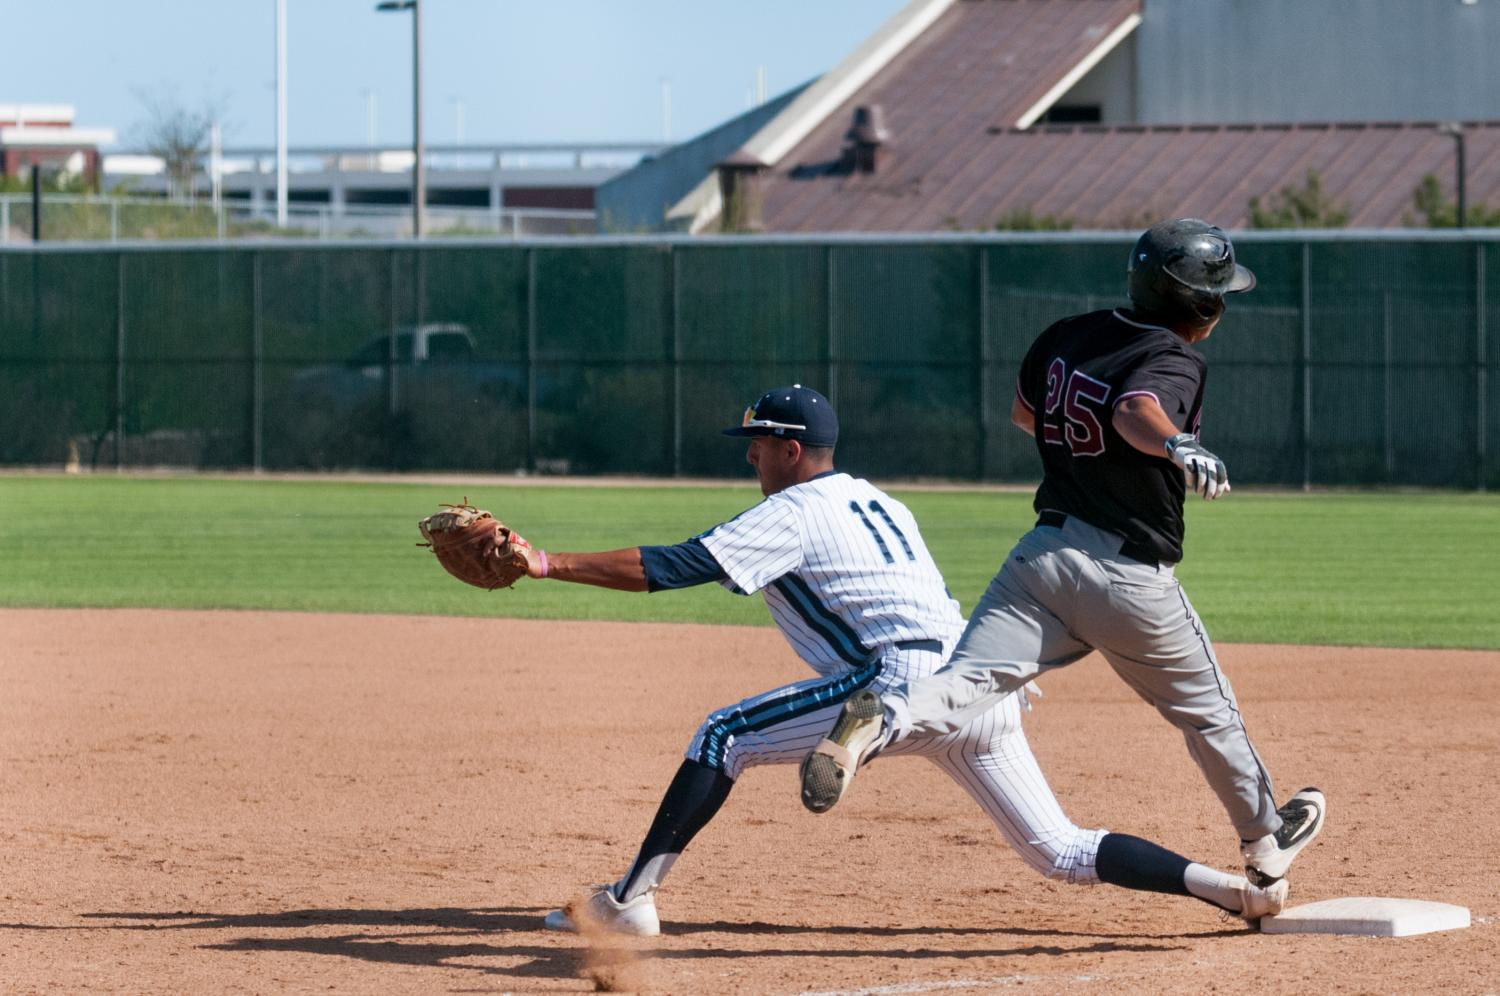 Up next for baseball: Today versus No. 12 Glendale College